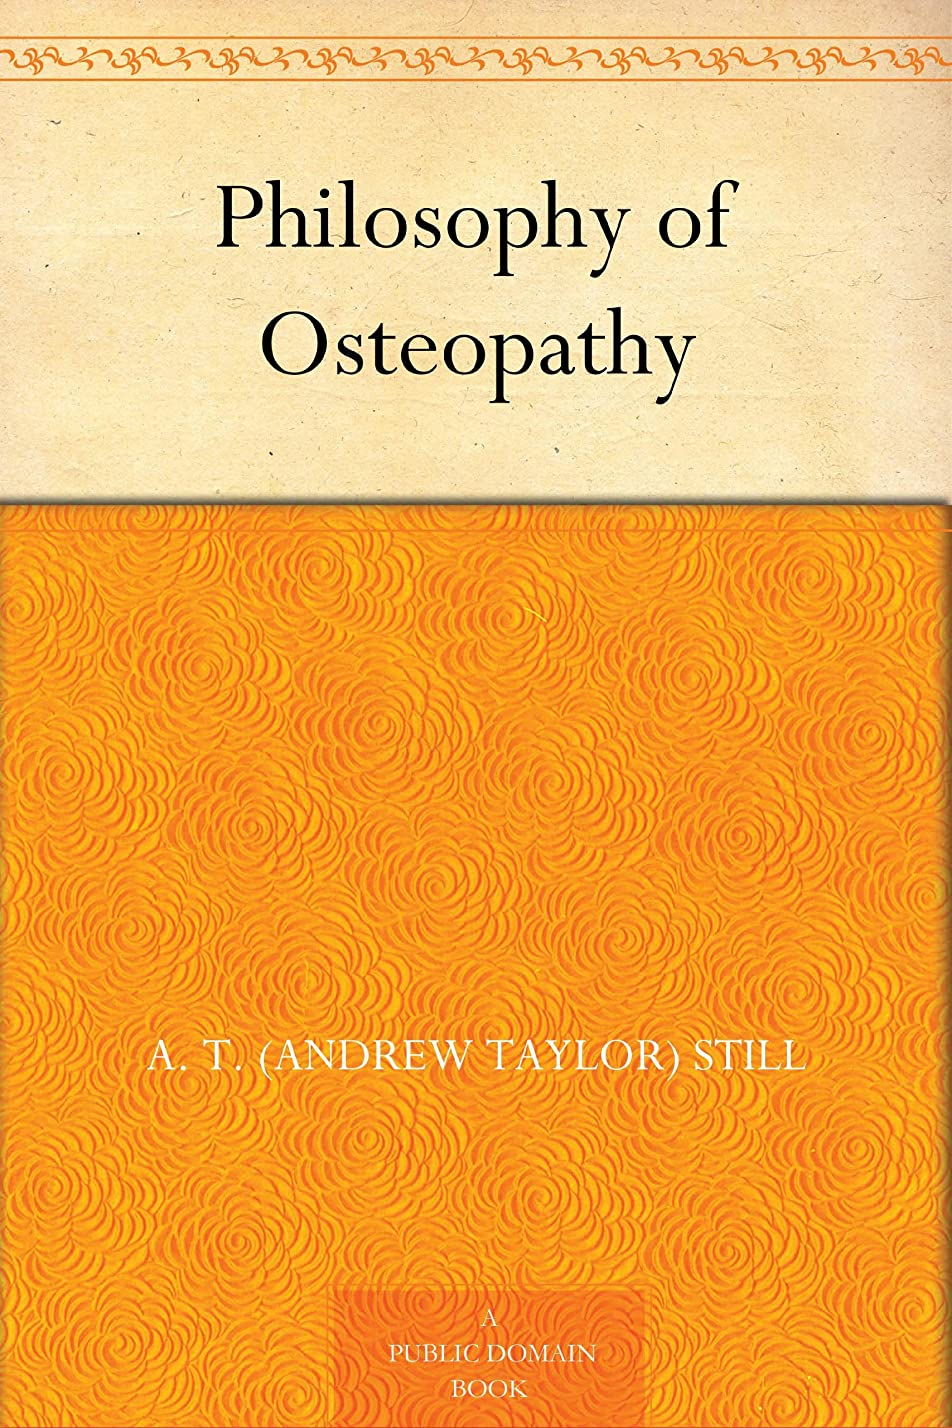 リネン電信フォルダPhilosophy of Osteopathy (English Edition)